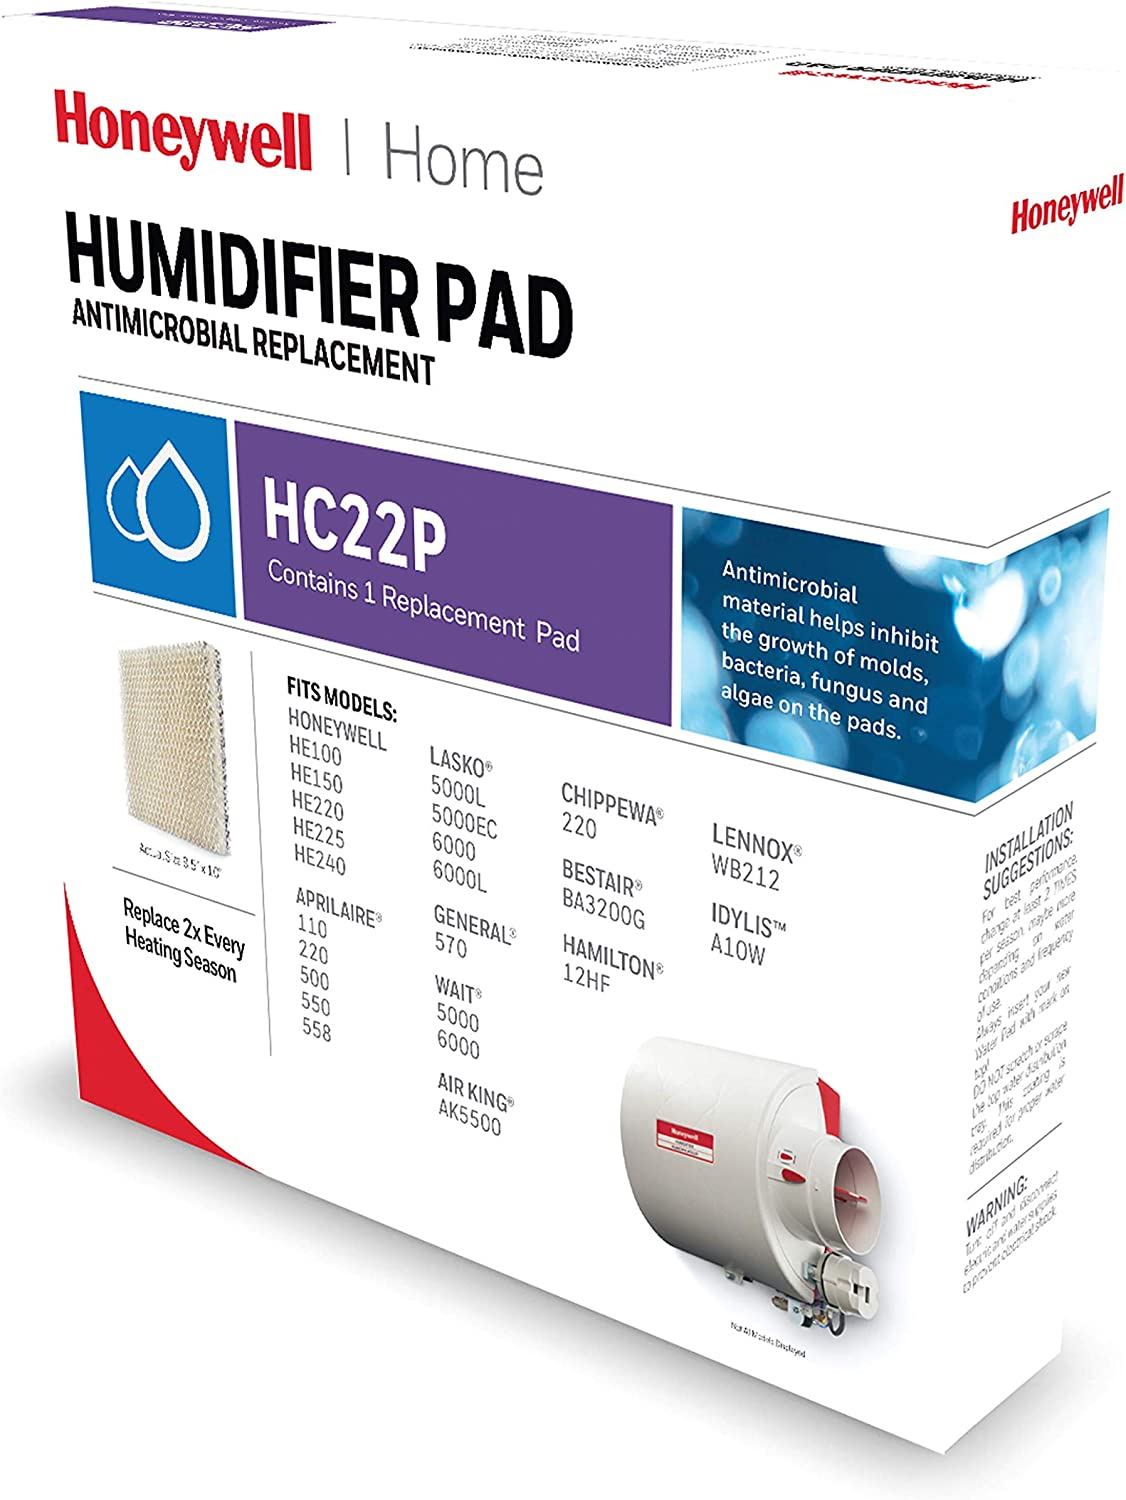 Honeywell Home Whole House Humidifier Replacement Pad for HE220A Humidifier